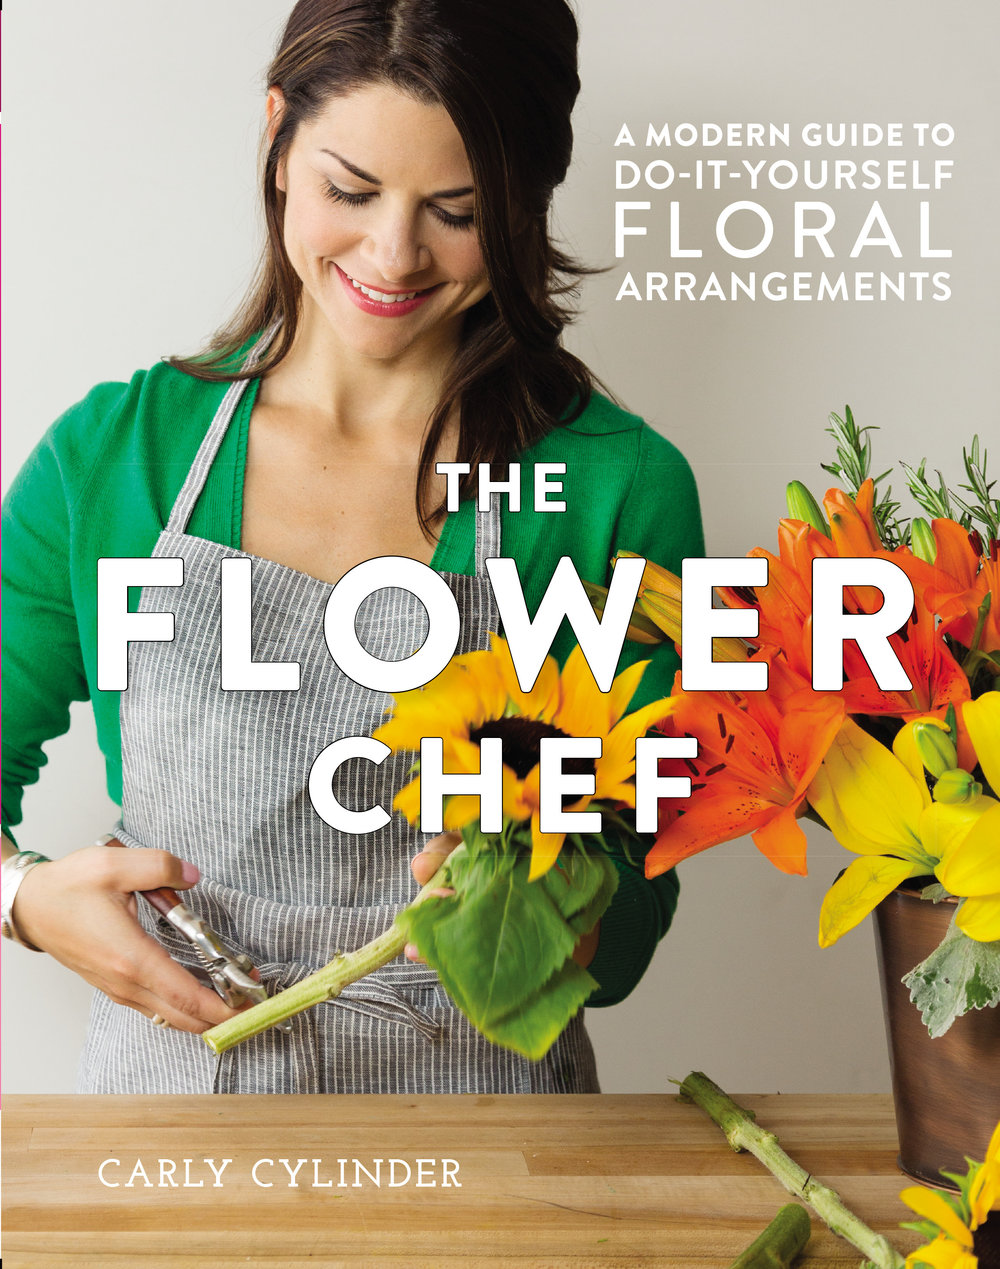 THEFLOWERCHEF.JPG